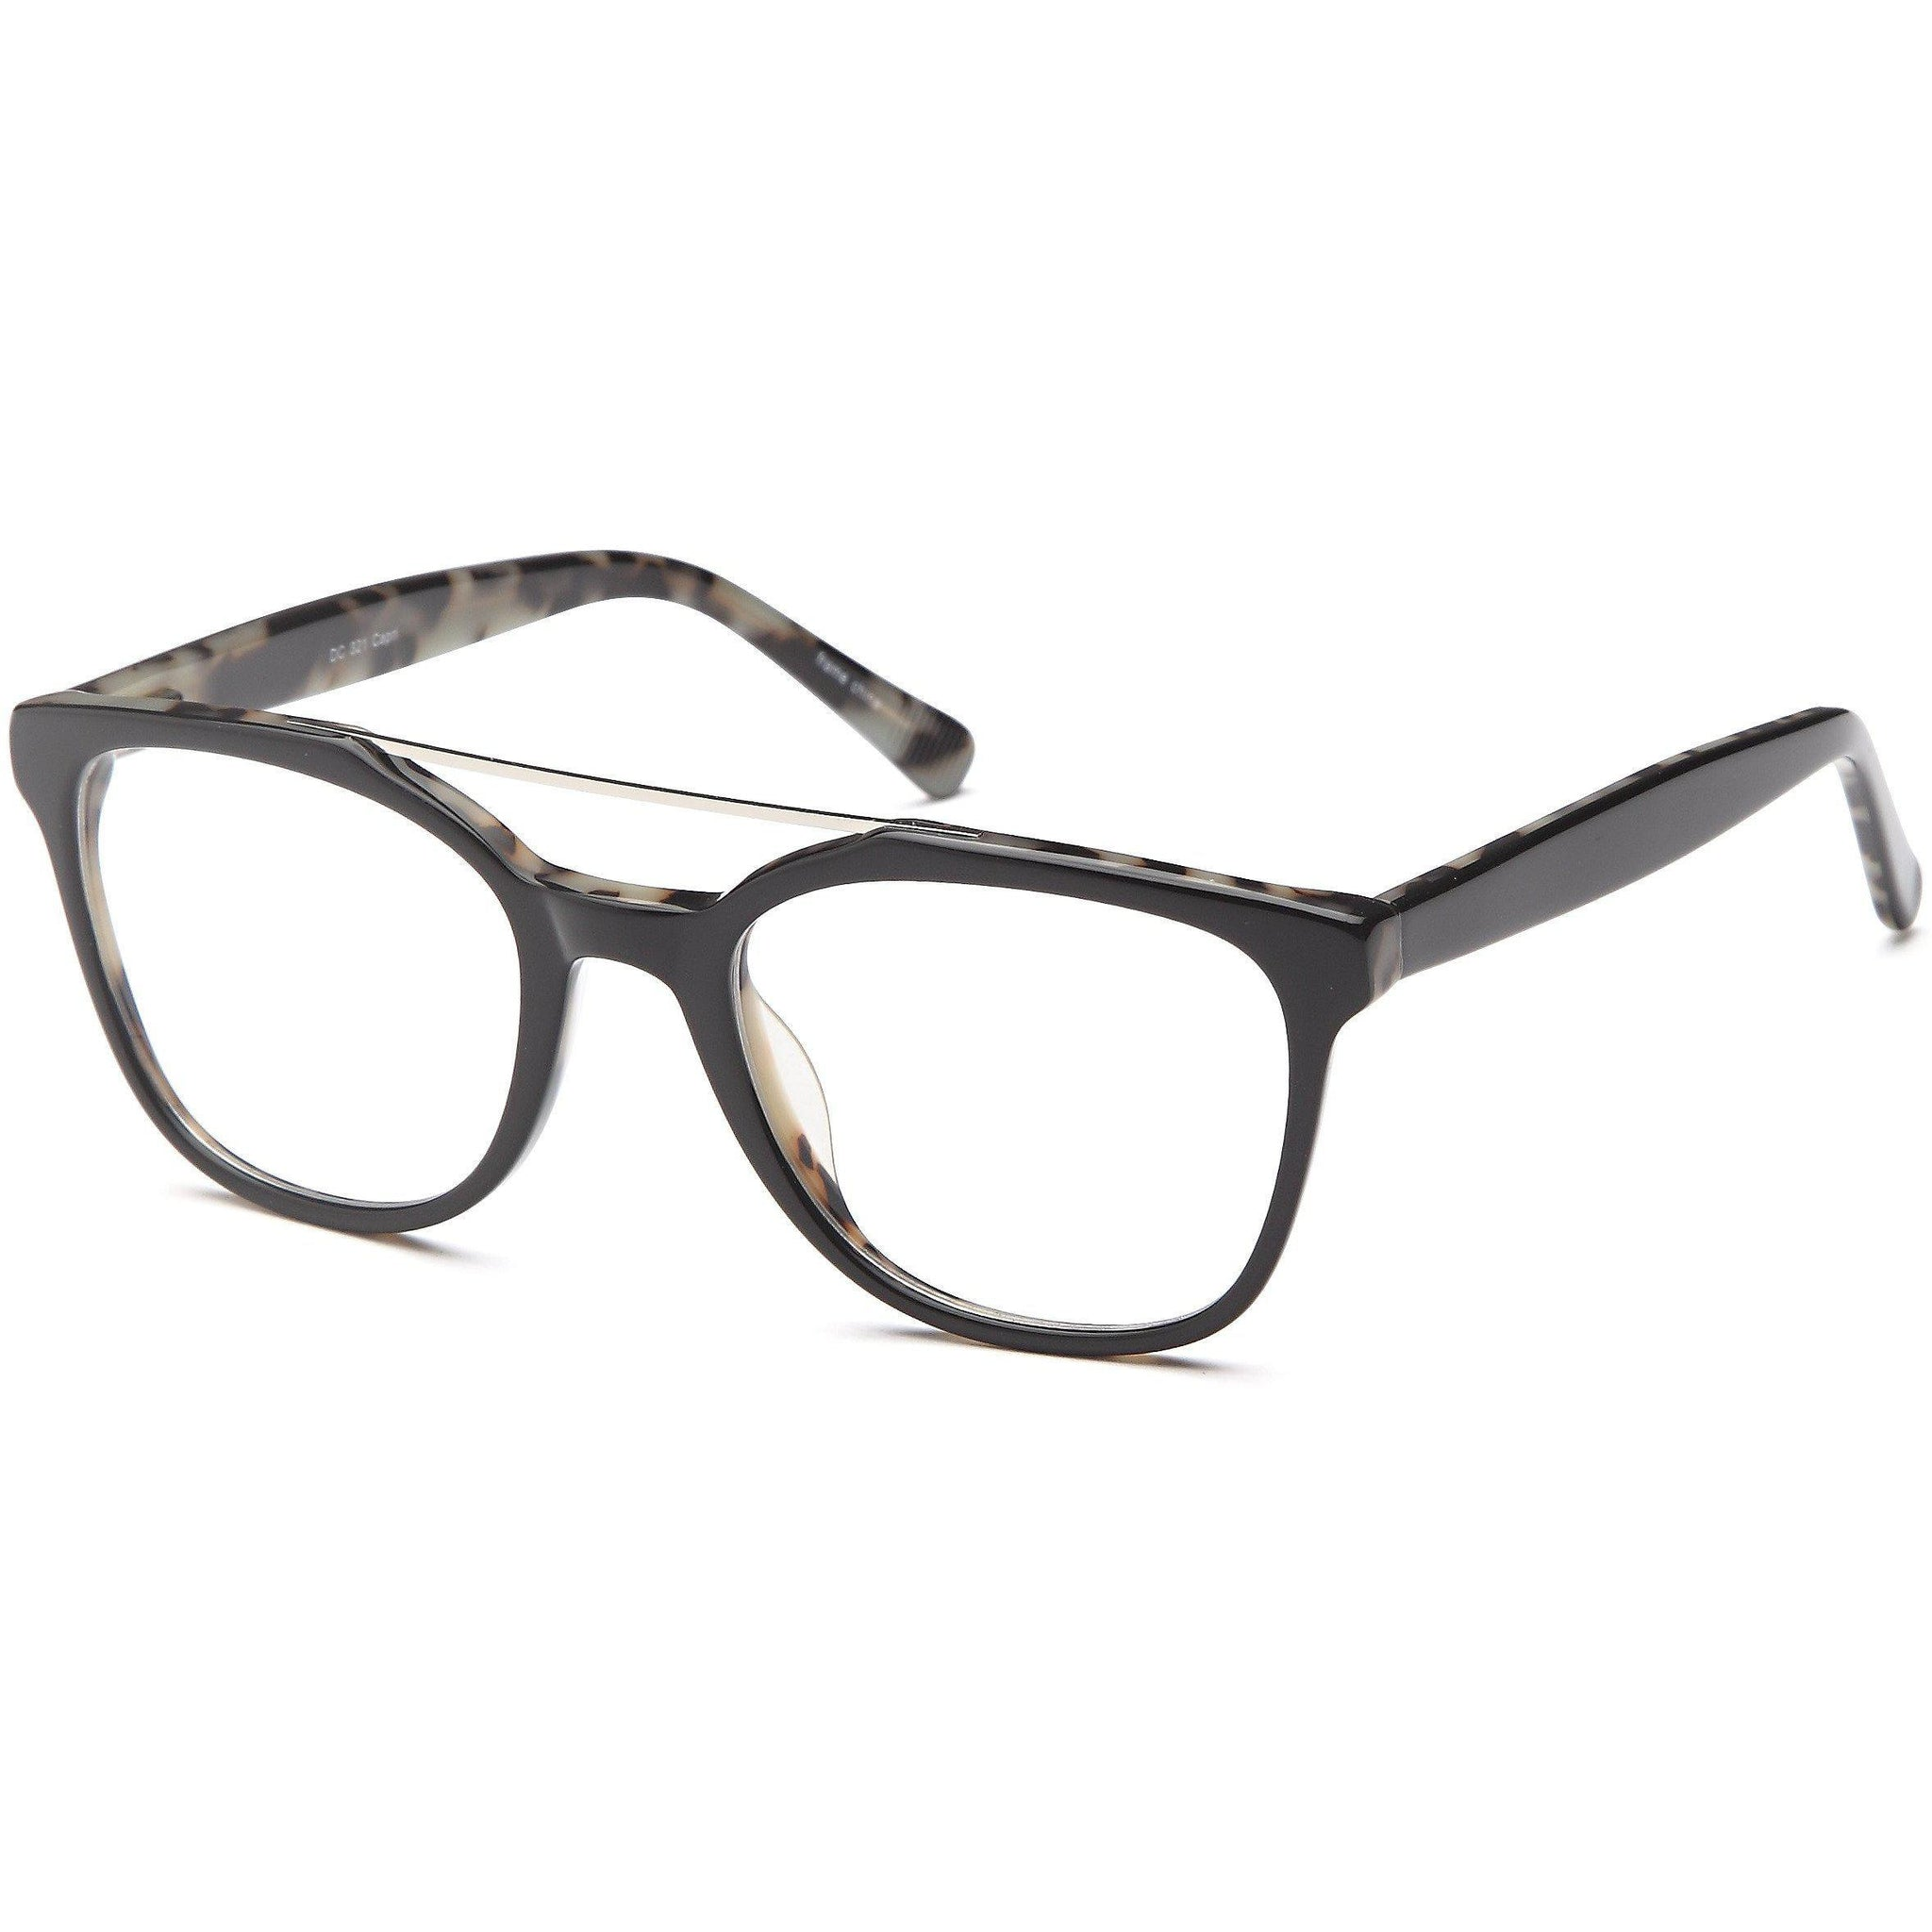 Di Caprio Prescription Glasses DC 321 Eyeglasses Frame - timetoshade